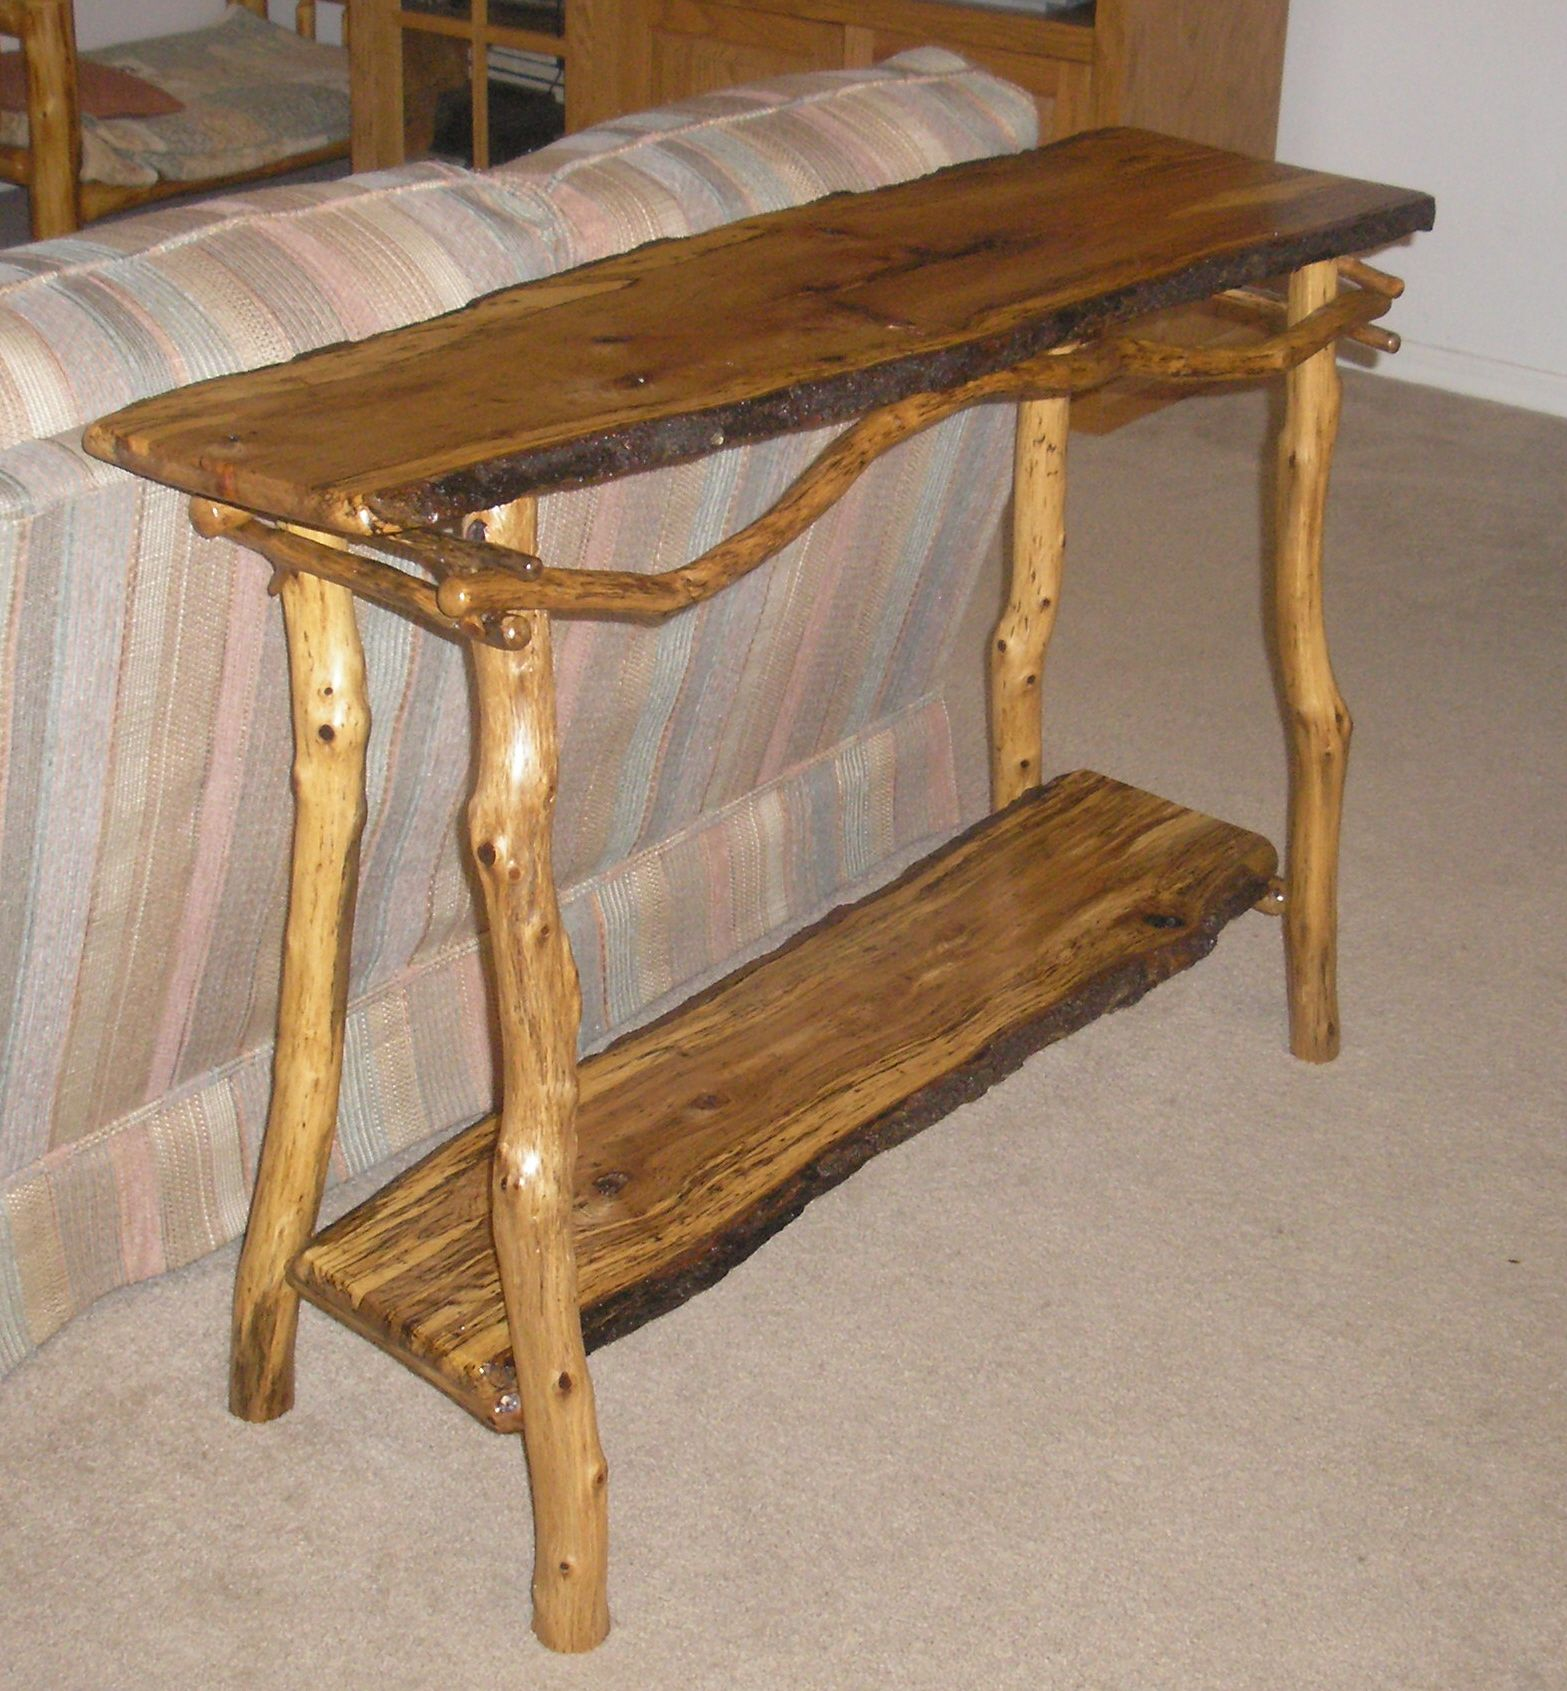 Rustic Rustic Sofa Tables Log Sofa Tables Florida Rustic Sofa Tables Decor Log Furniture Plans